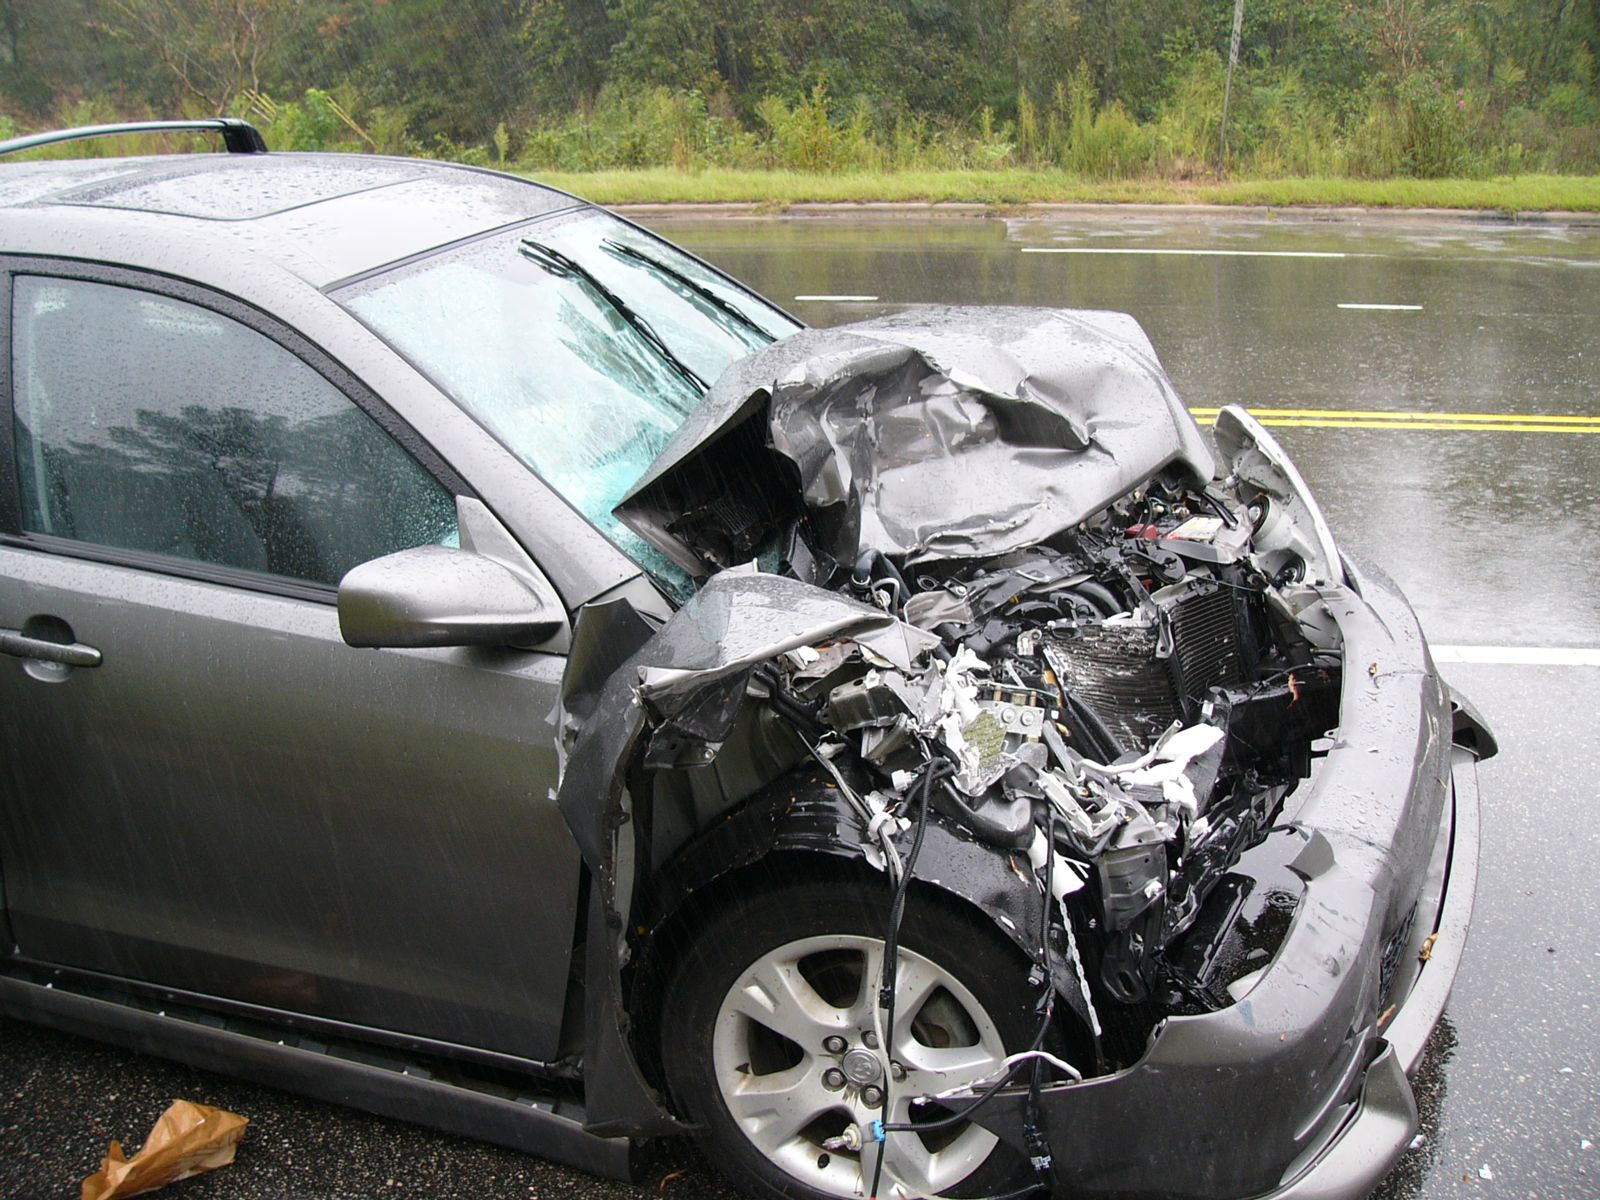 15 tips to find best car accident lawyer